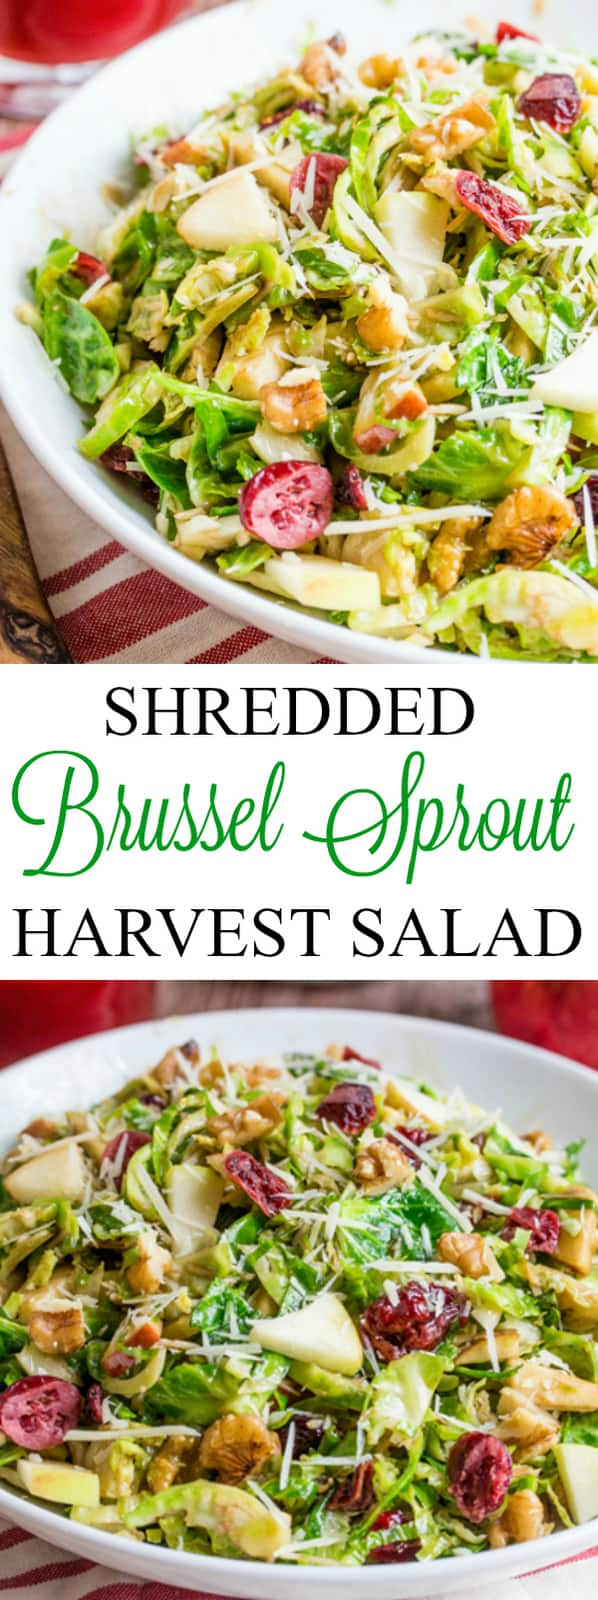 Shredded Brussel Sprout Harvest Salad collage with words in the middle